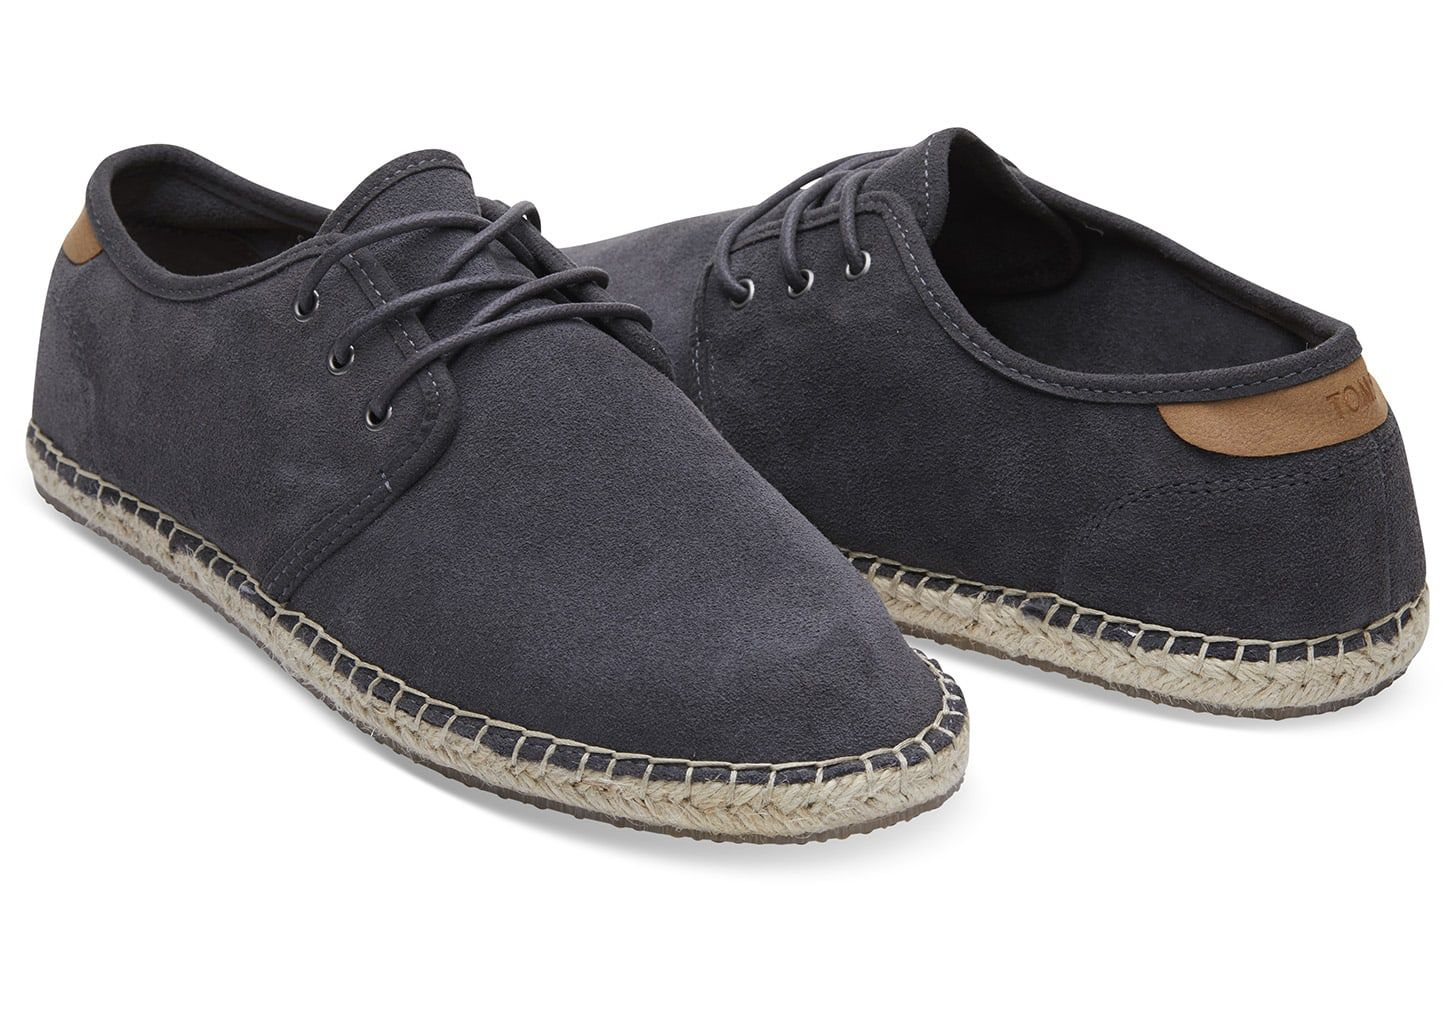 0d45806e0cb Forged Iron Grey Suede Men s Diego Sneakers